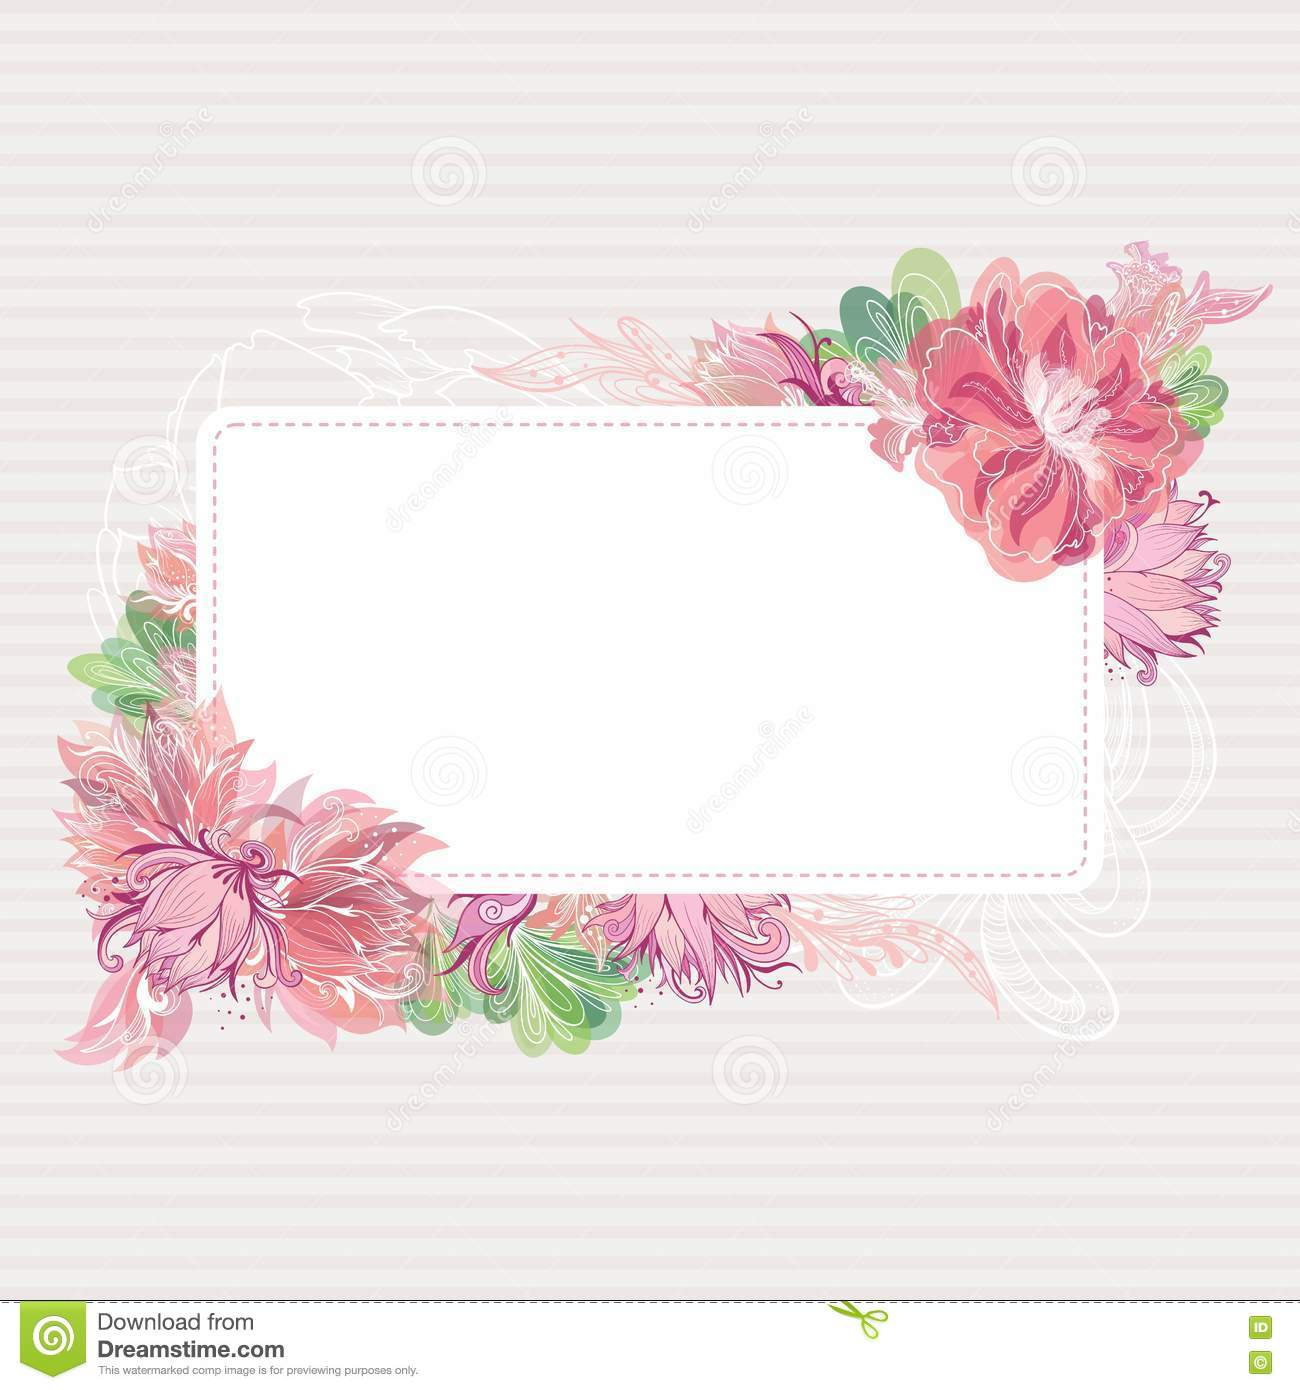 Romantic Vector Card Template With Floral Border Stock Vector - Illustration of romantic ...